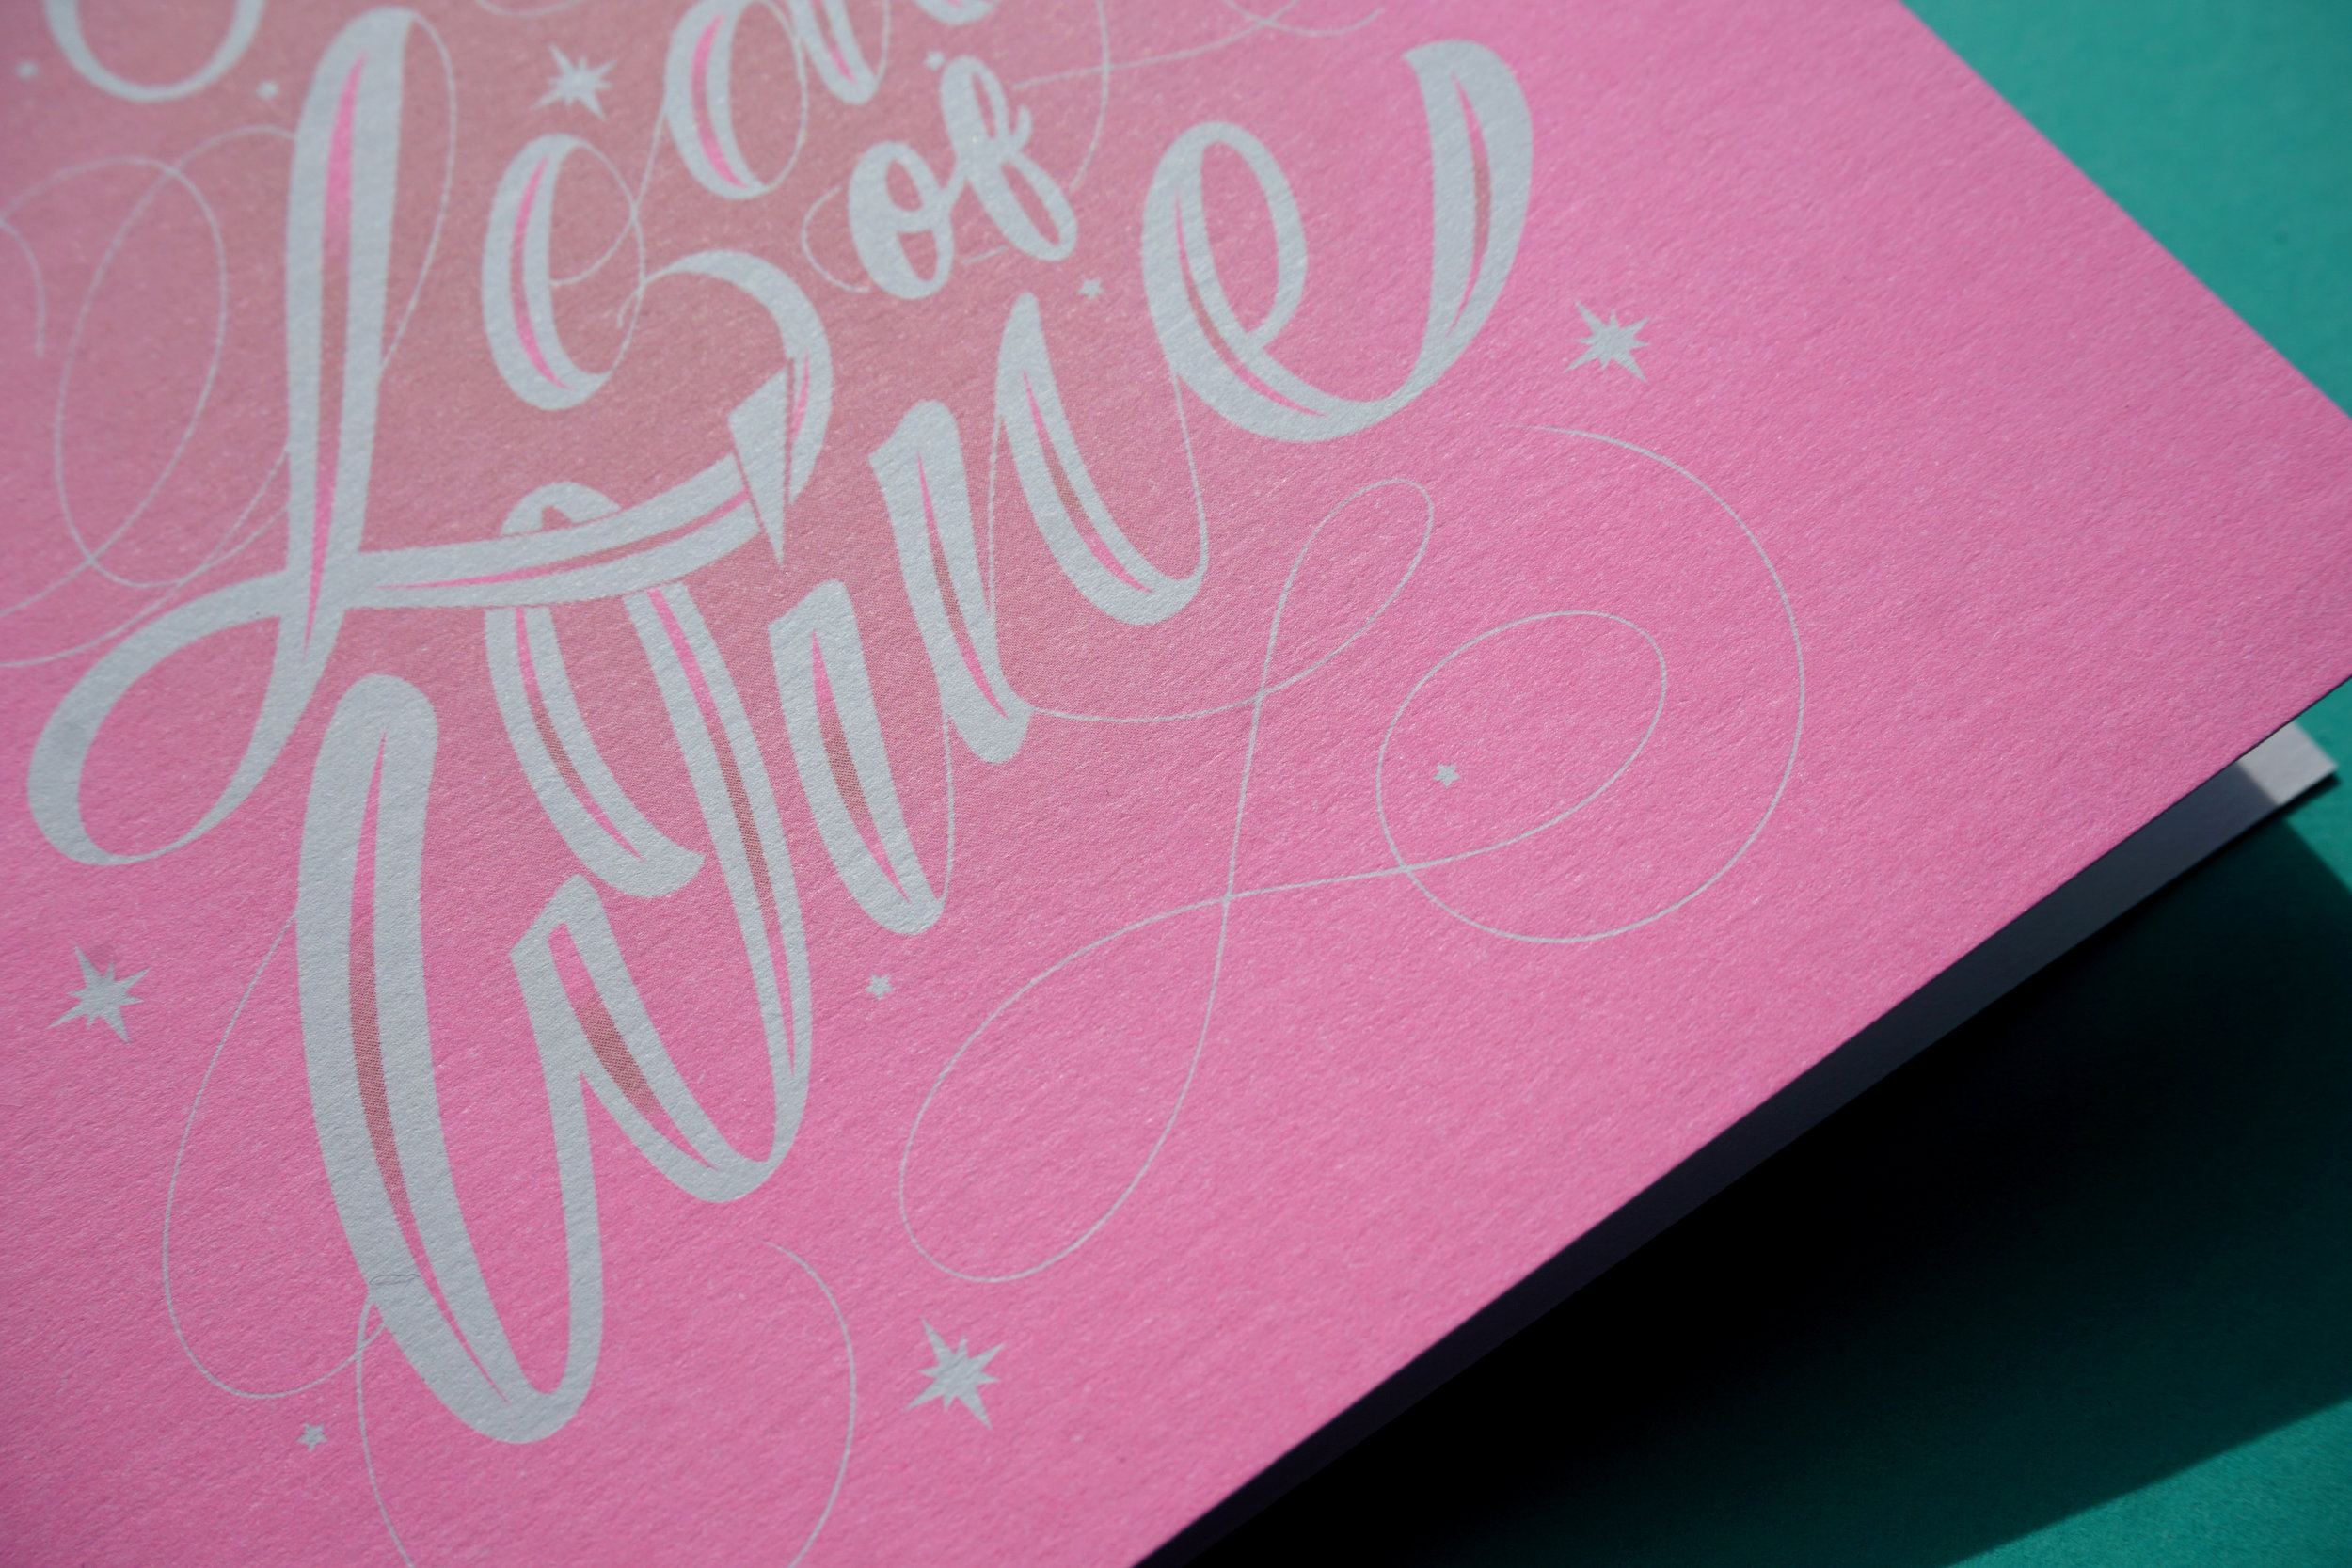 Lana-Hughes-Good-friends-and-a-shit-load-of-wine-scribbler-cards-zoom1.JPG